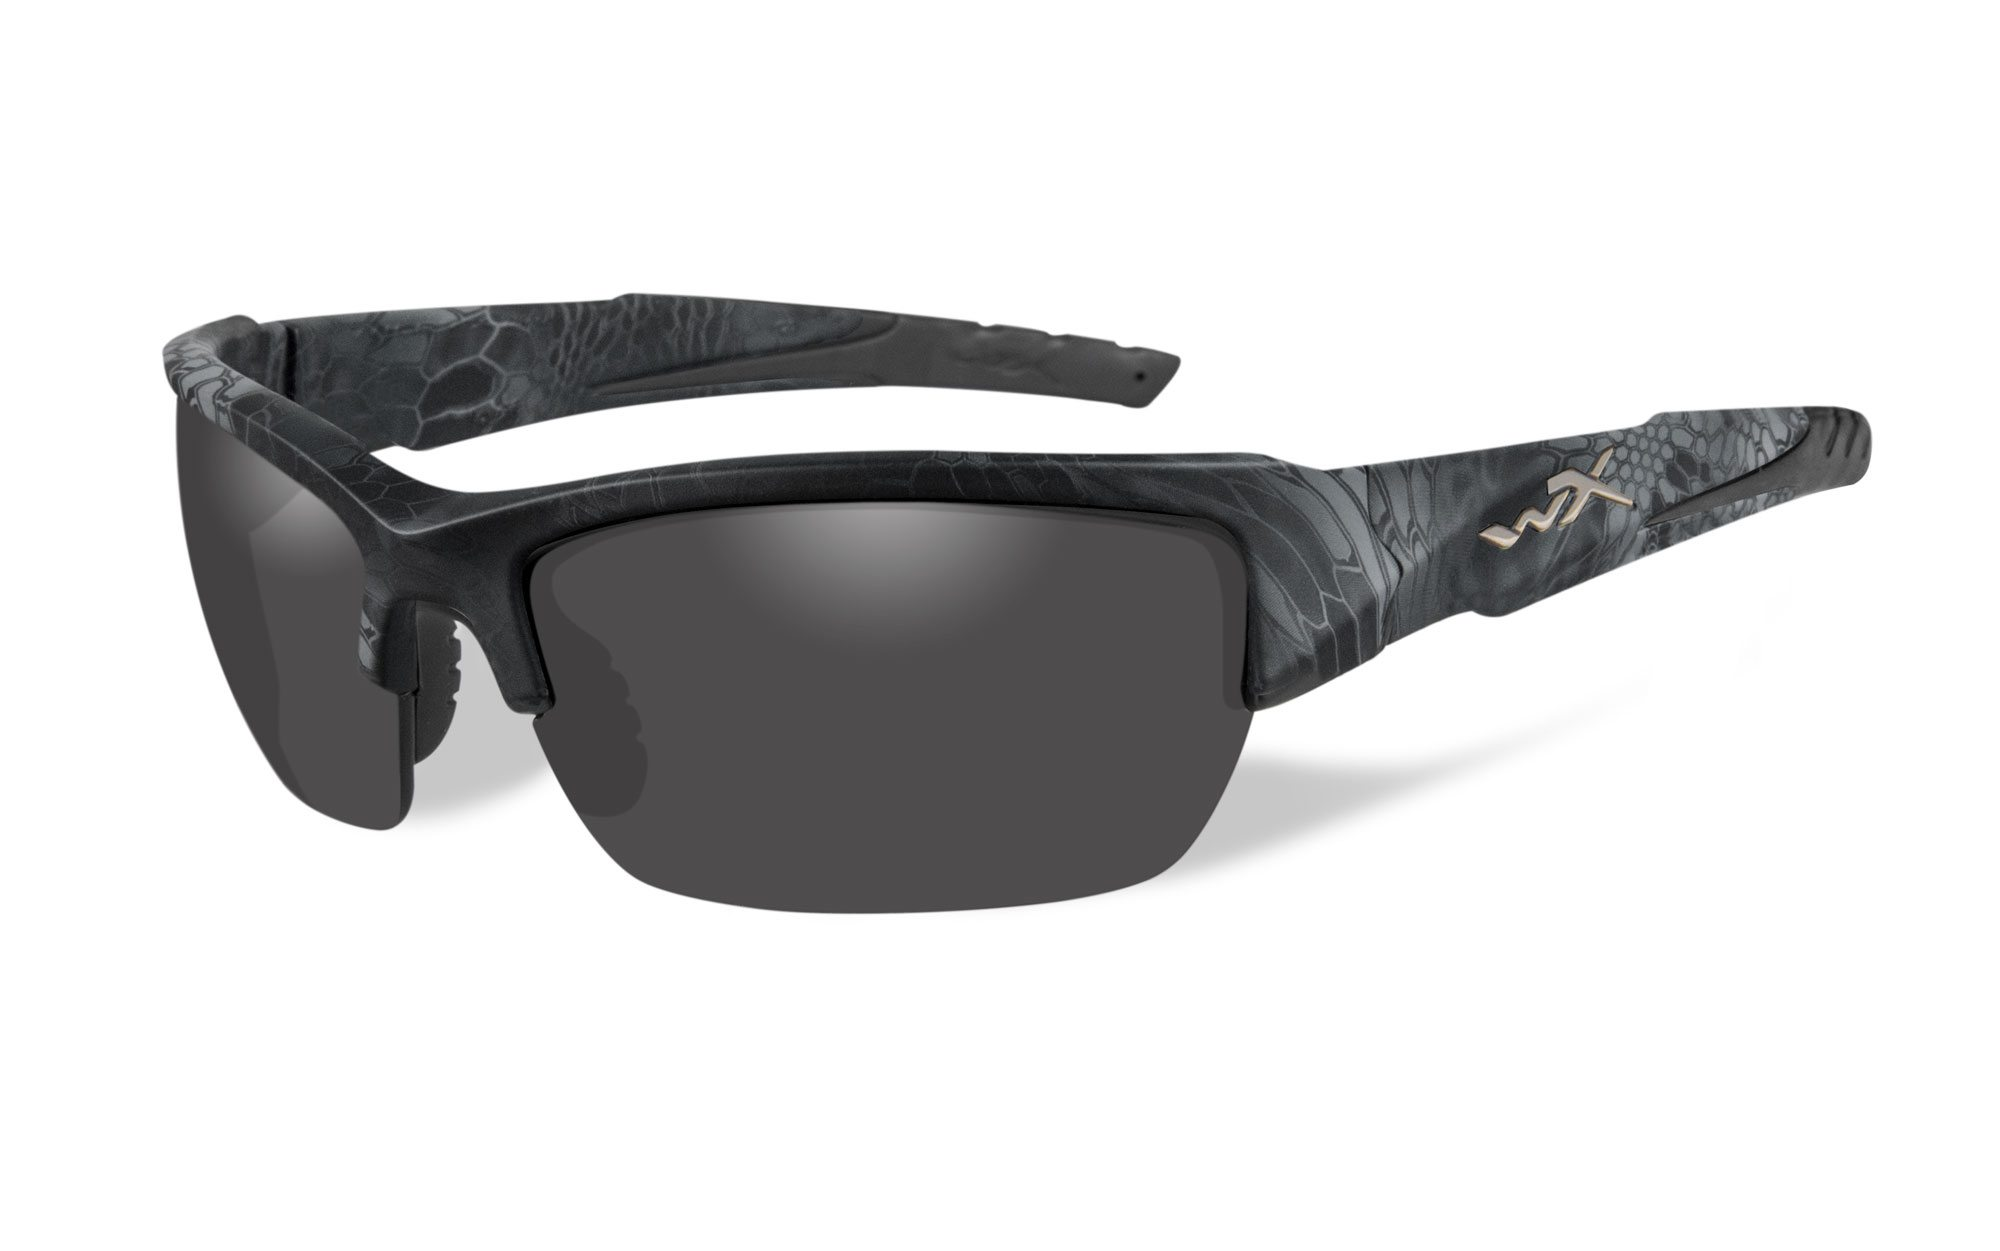 613577089f WileyX Valor safety glasses give you excellent protection with the sleek